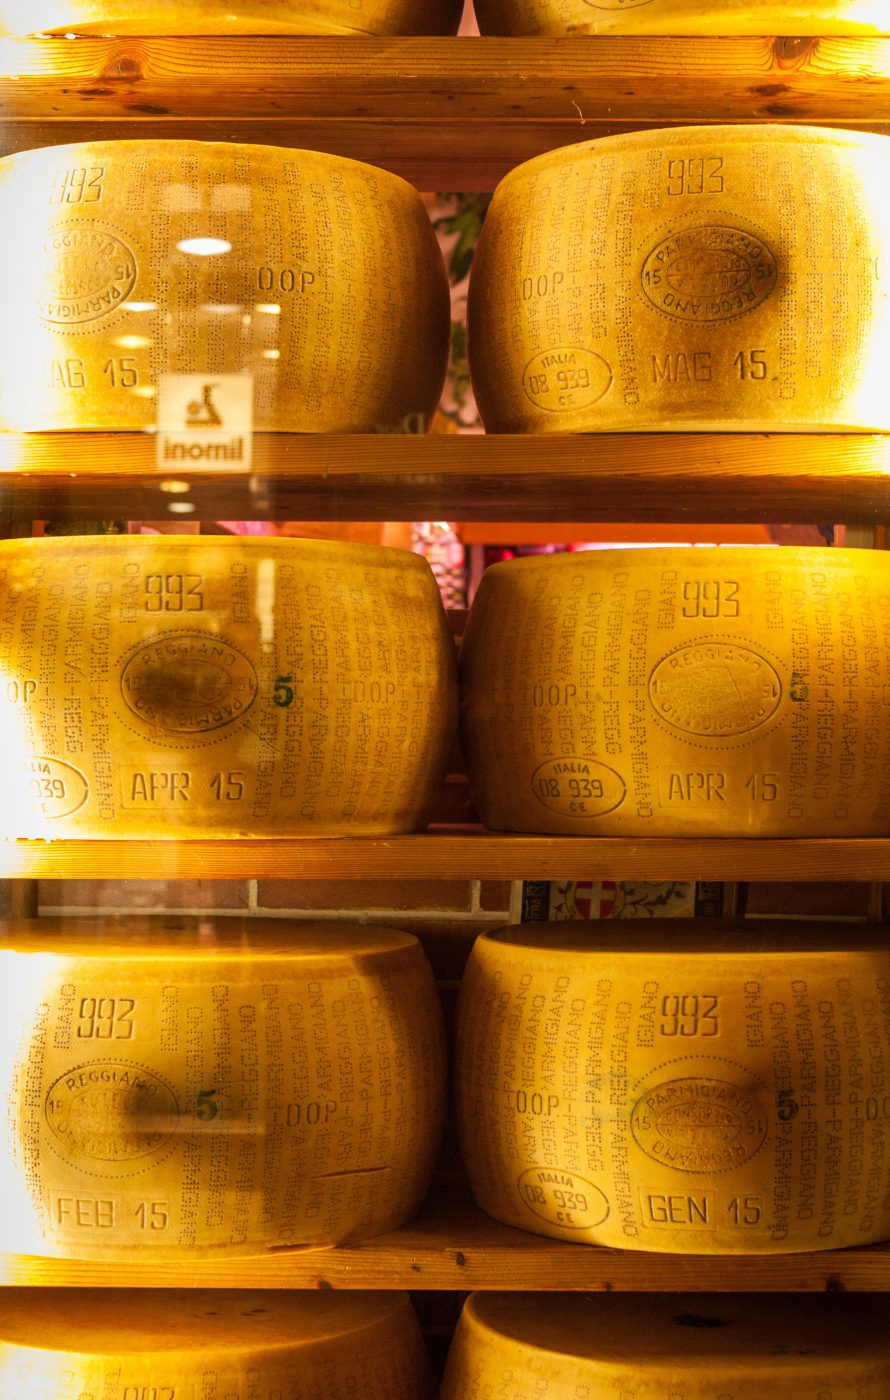 Cheese of Piemonte: History, Politics and Diplomacy